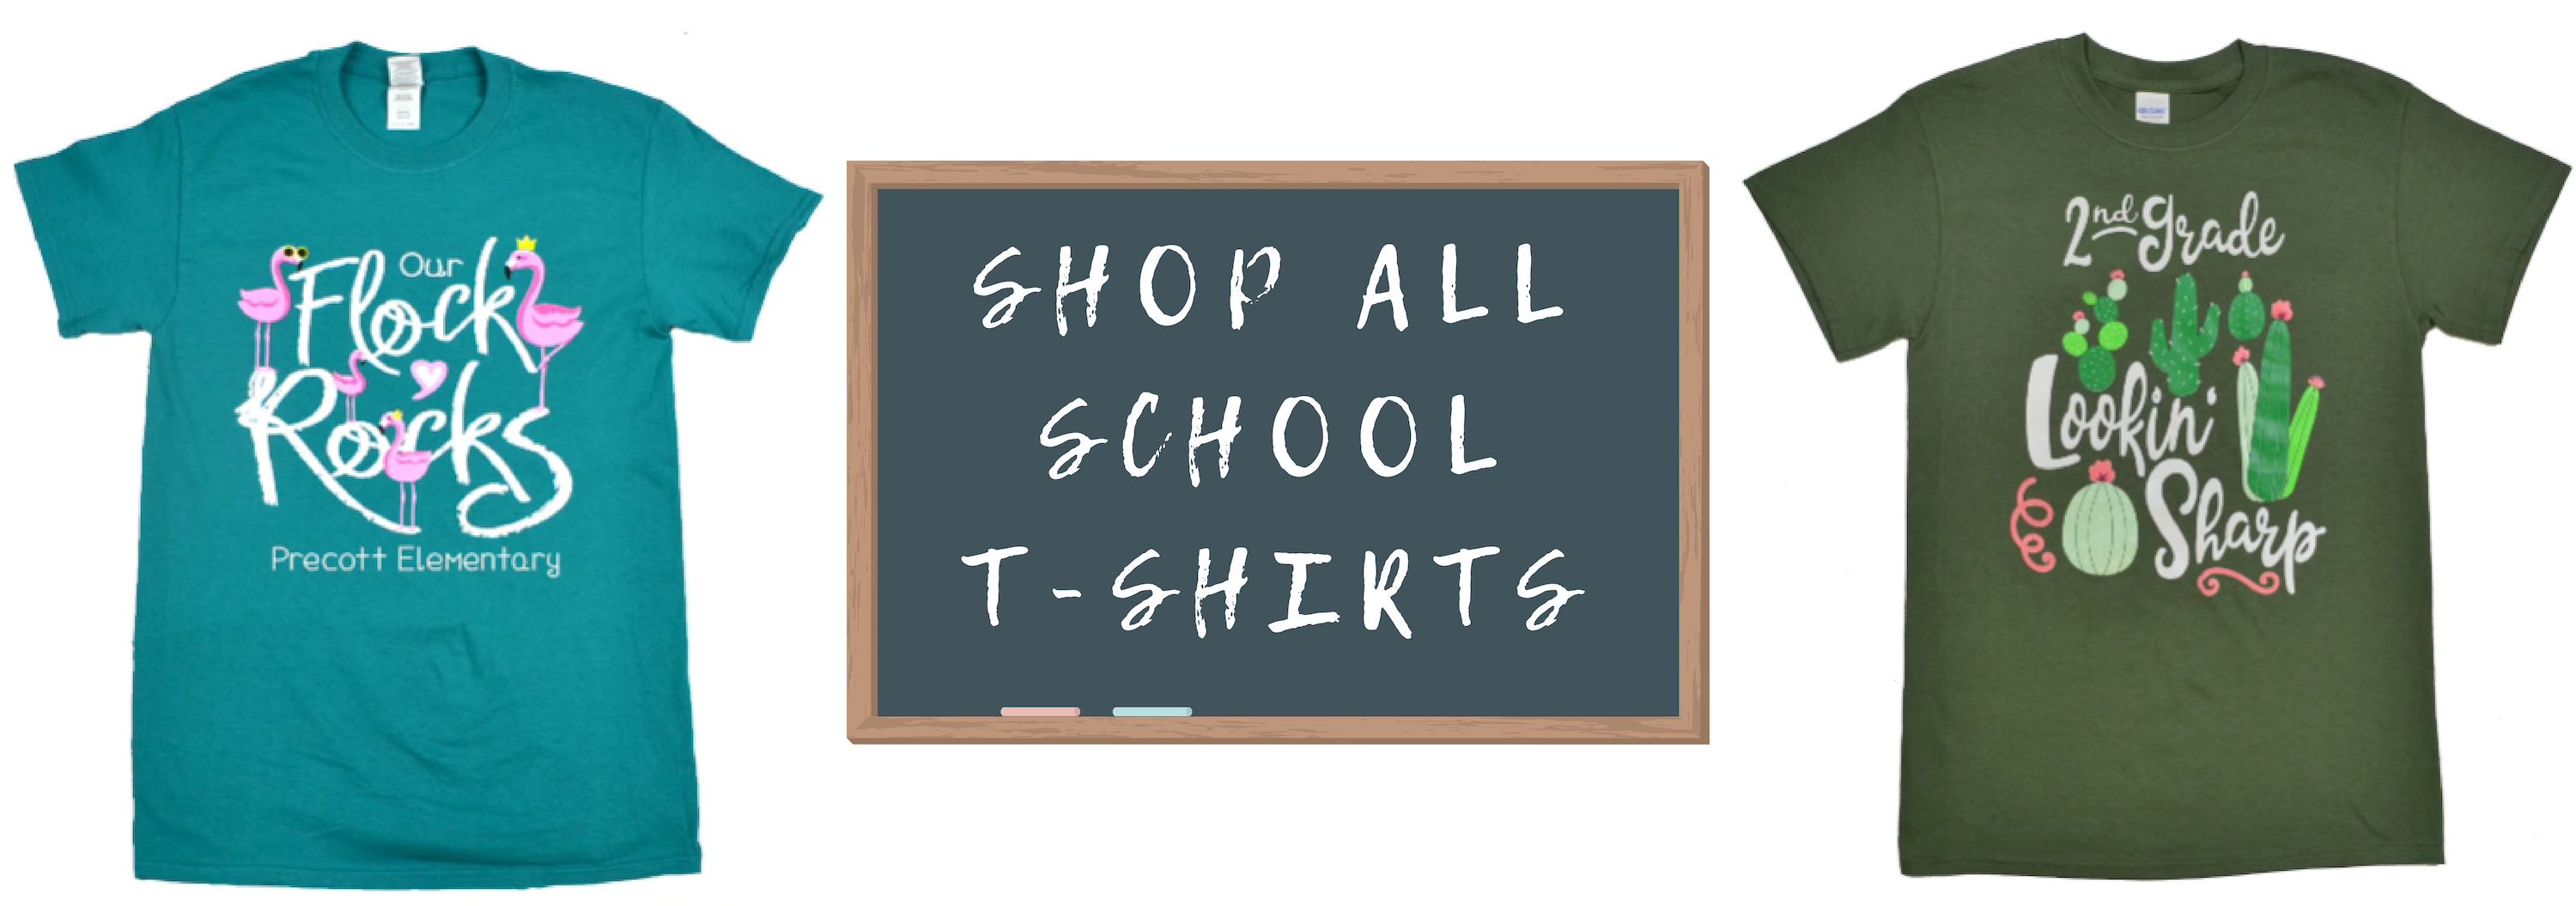 Wholesale Customizable T Shirts Get Your School Matching Before A